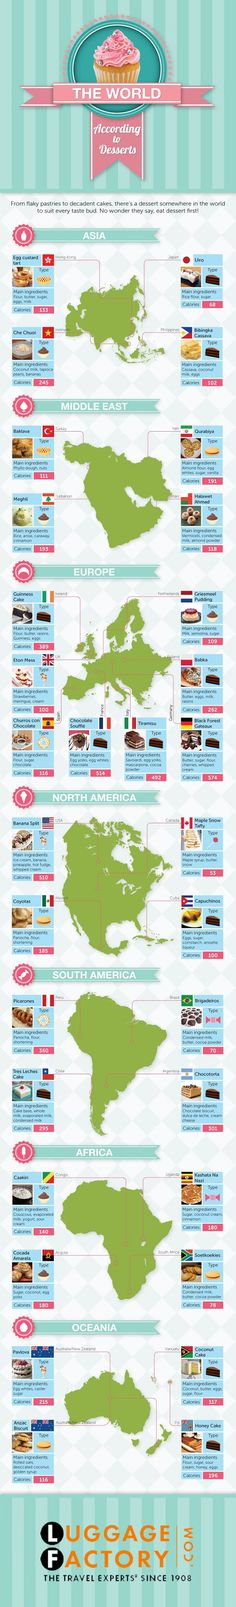 The world according to Desserts #traveltips   Please share and +1 if you find this useful/funny  follow the travel experts on Pinterest. Questions, Comments Suggestions --> luggagefactory.com